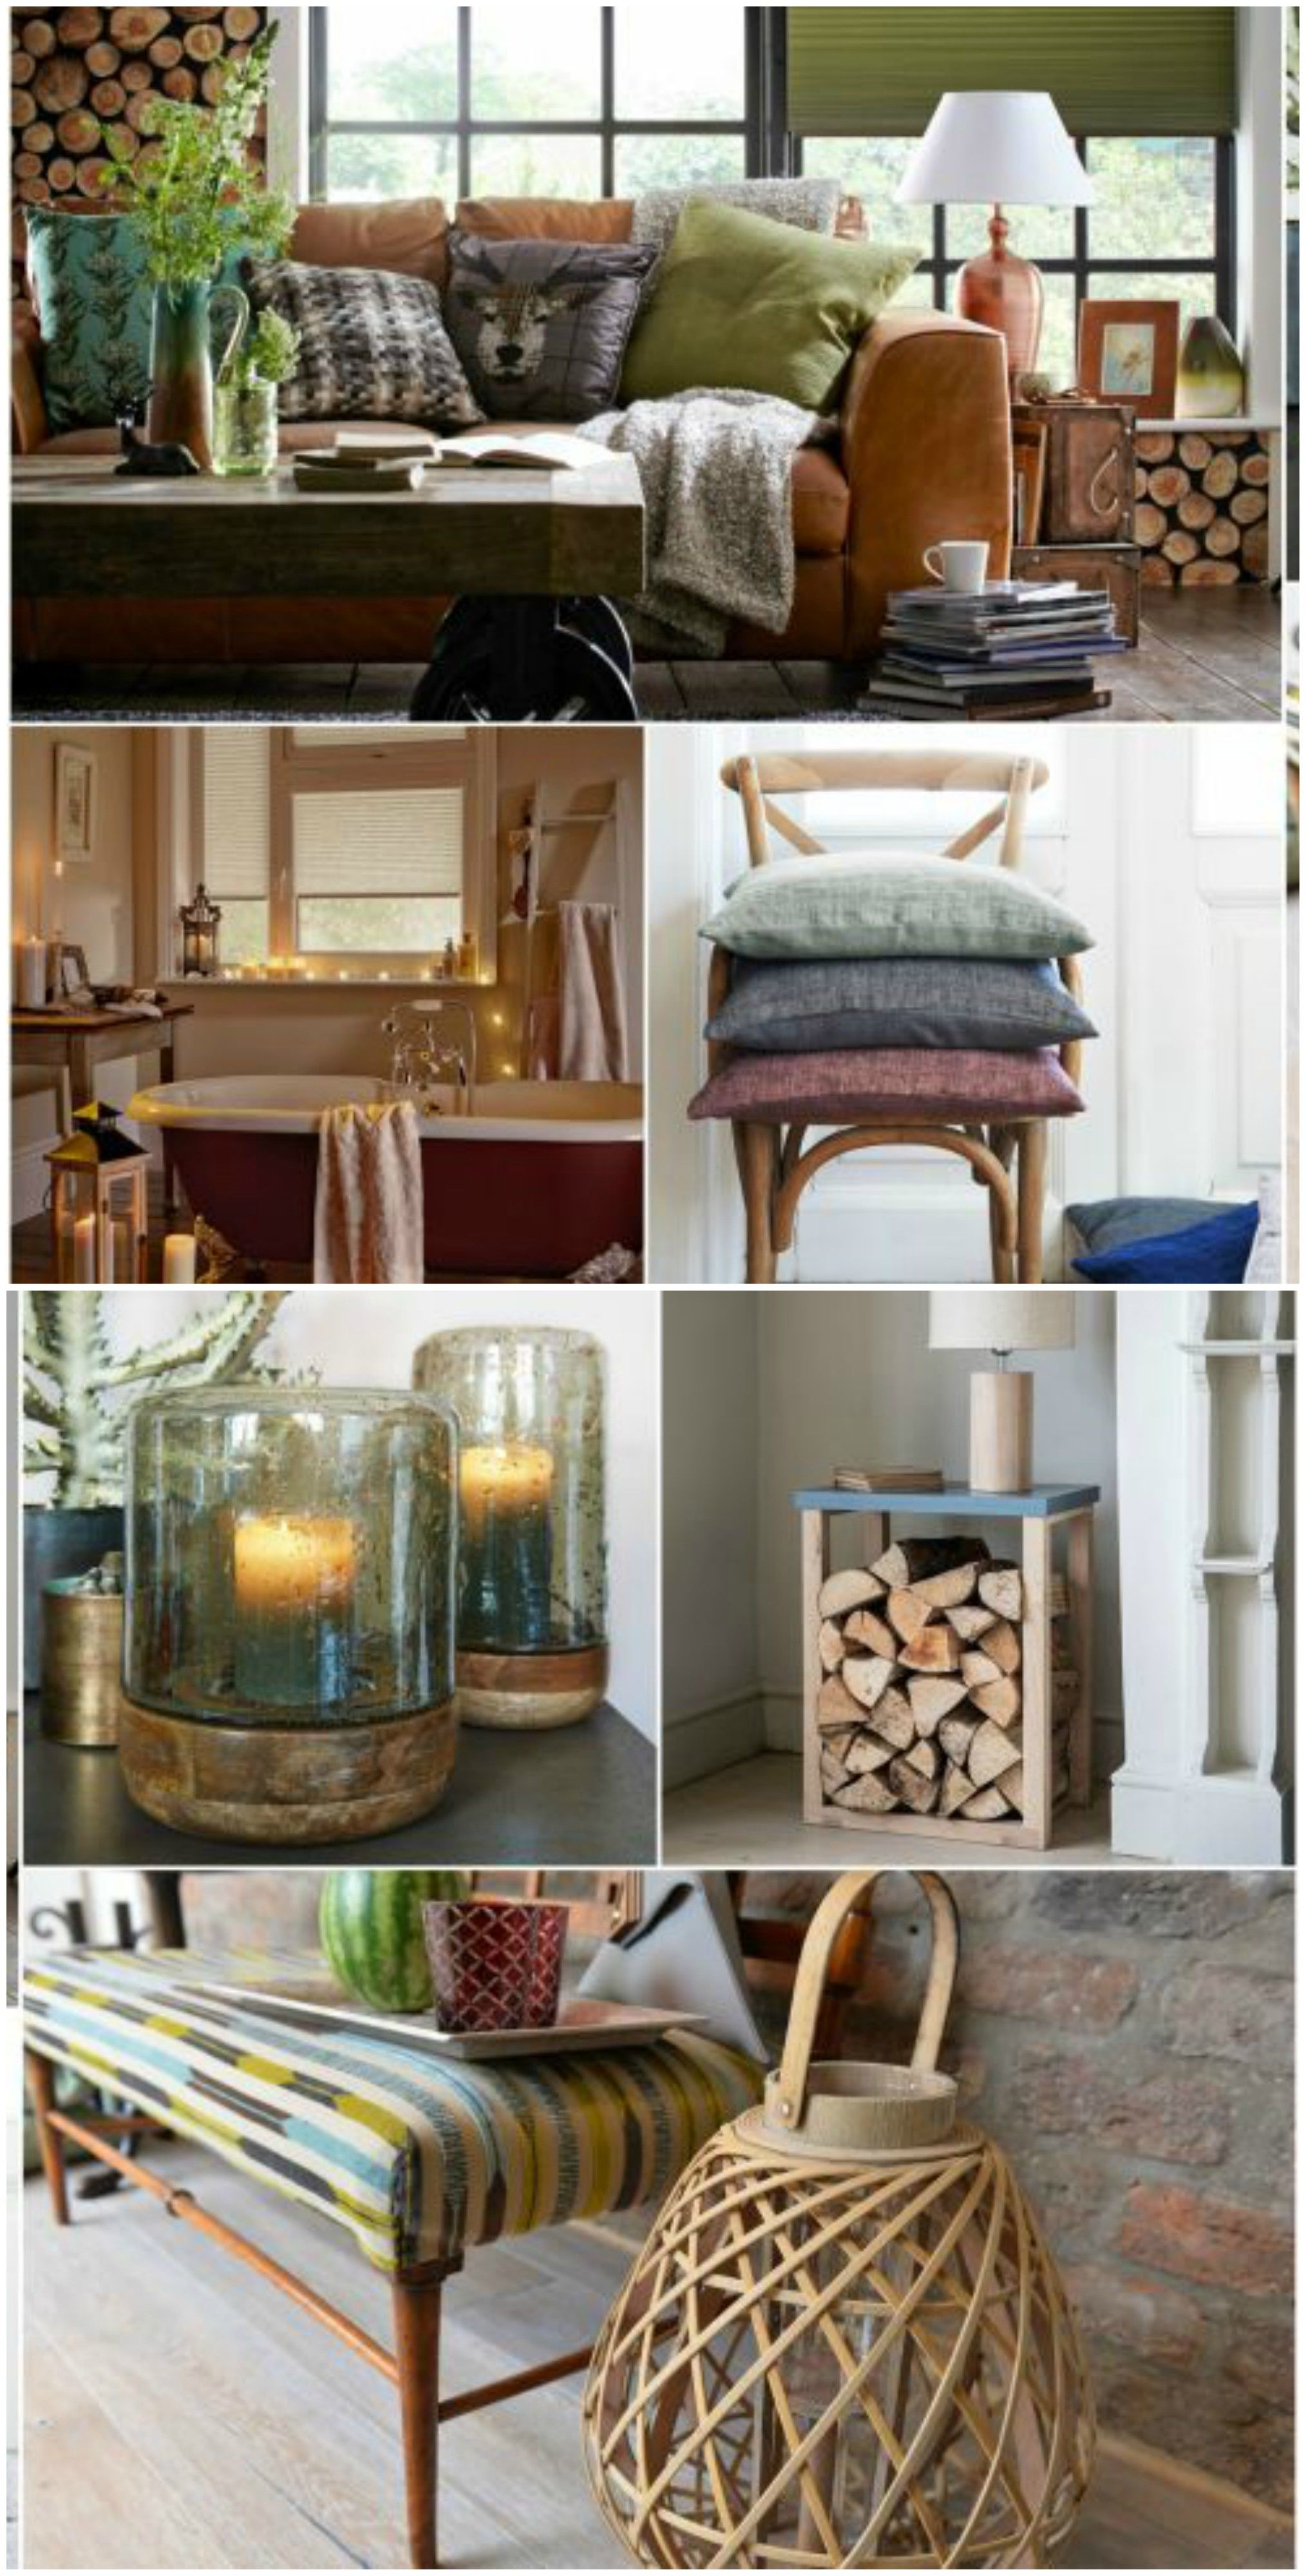 Boho Einrichtung 27 Hygge-inspired Items For Your Home | Hygge Home, Unique